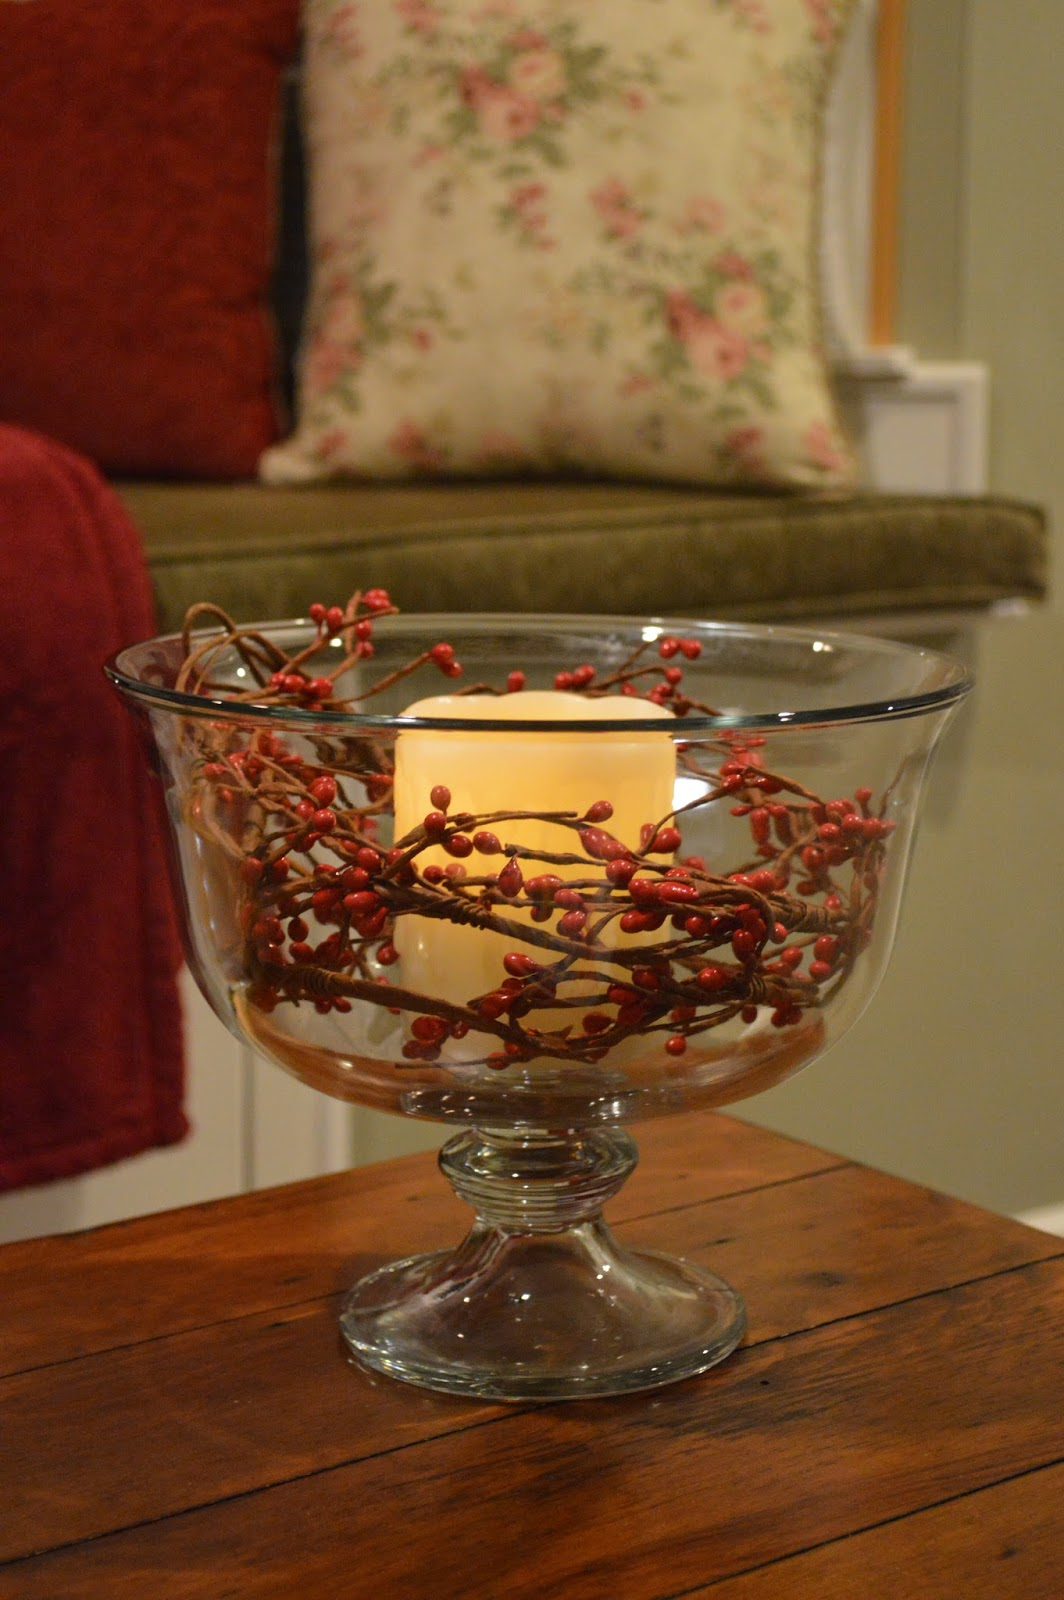 Glass bowl with candle and berries inside